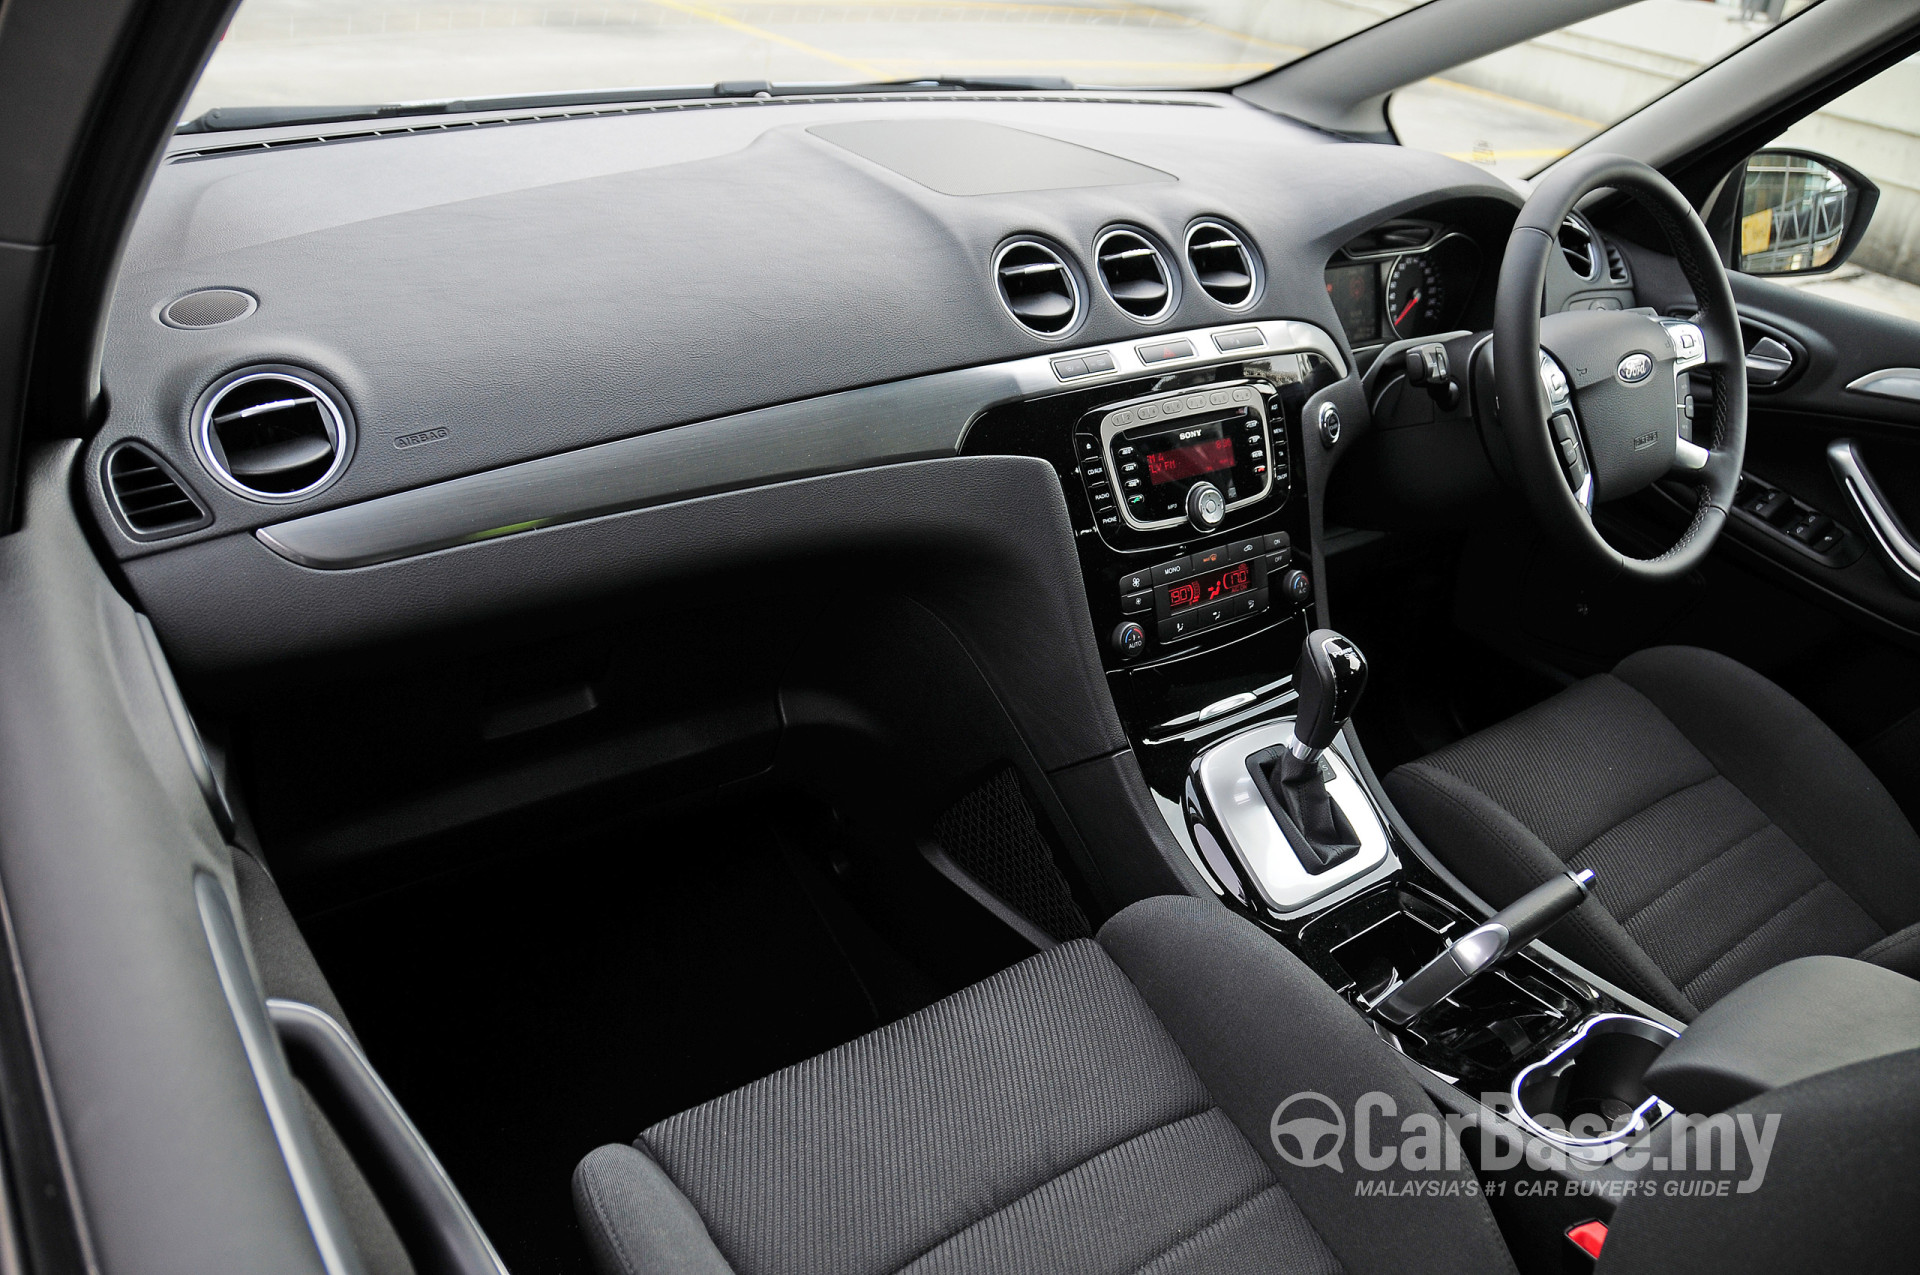 Compare Car Dimensions >> Ford S-MAX Mk1 (CD340) (2011) Interior Image #11263 in Malaysia - Reviews, Specs, Prices ...